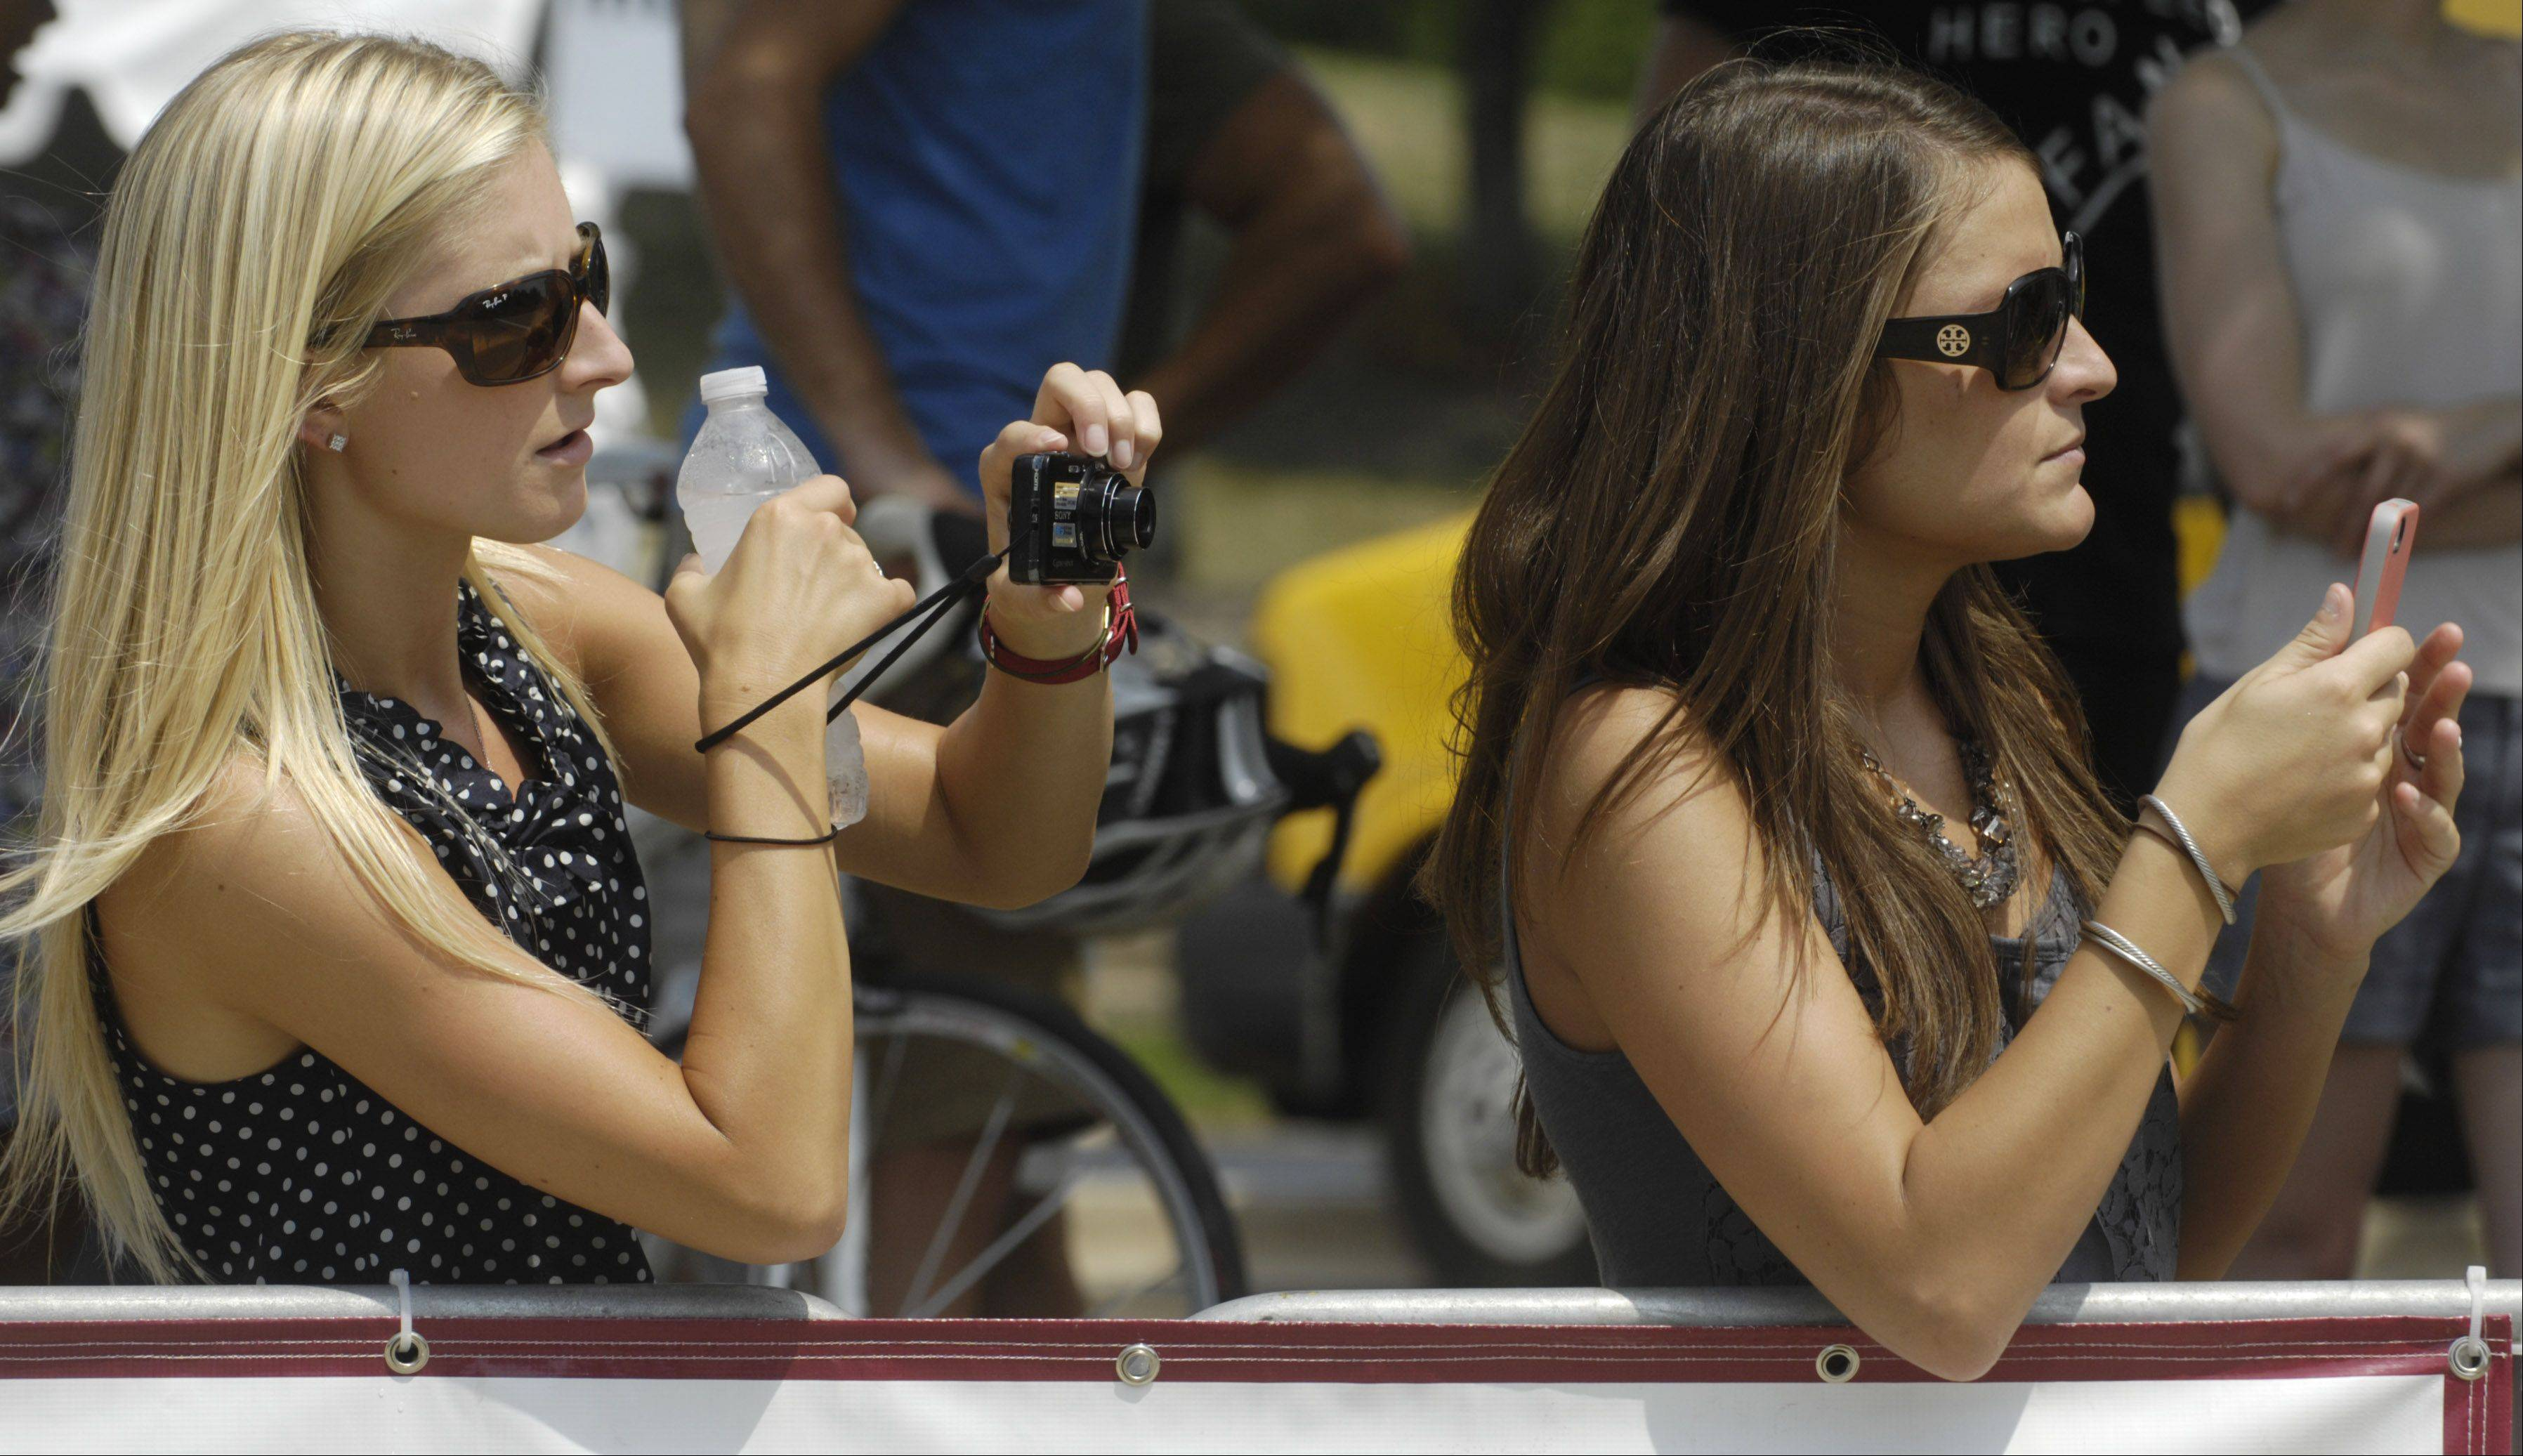 Christine Allegretti of Park Ridge and Meghan Hull of Wheaton take photos of their boyfriends, who are competing during the Tour of Elk Grove Saturday.